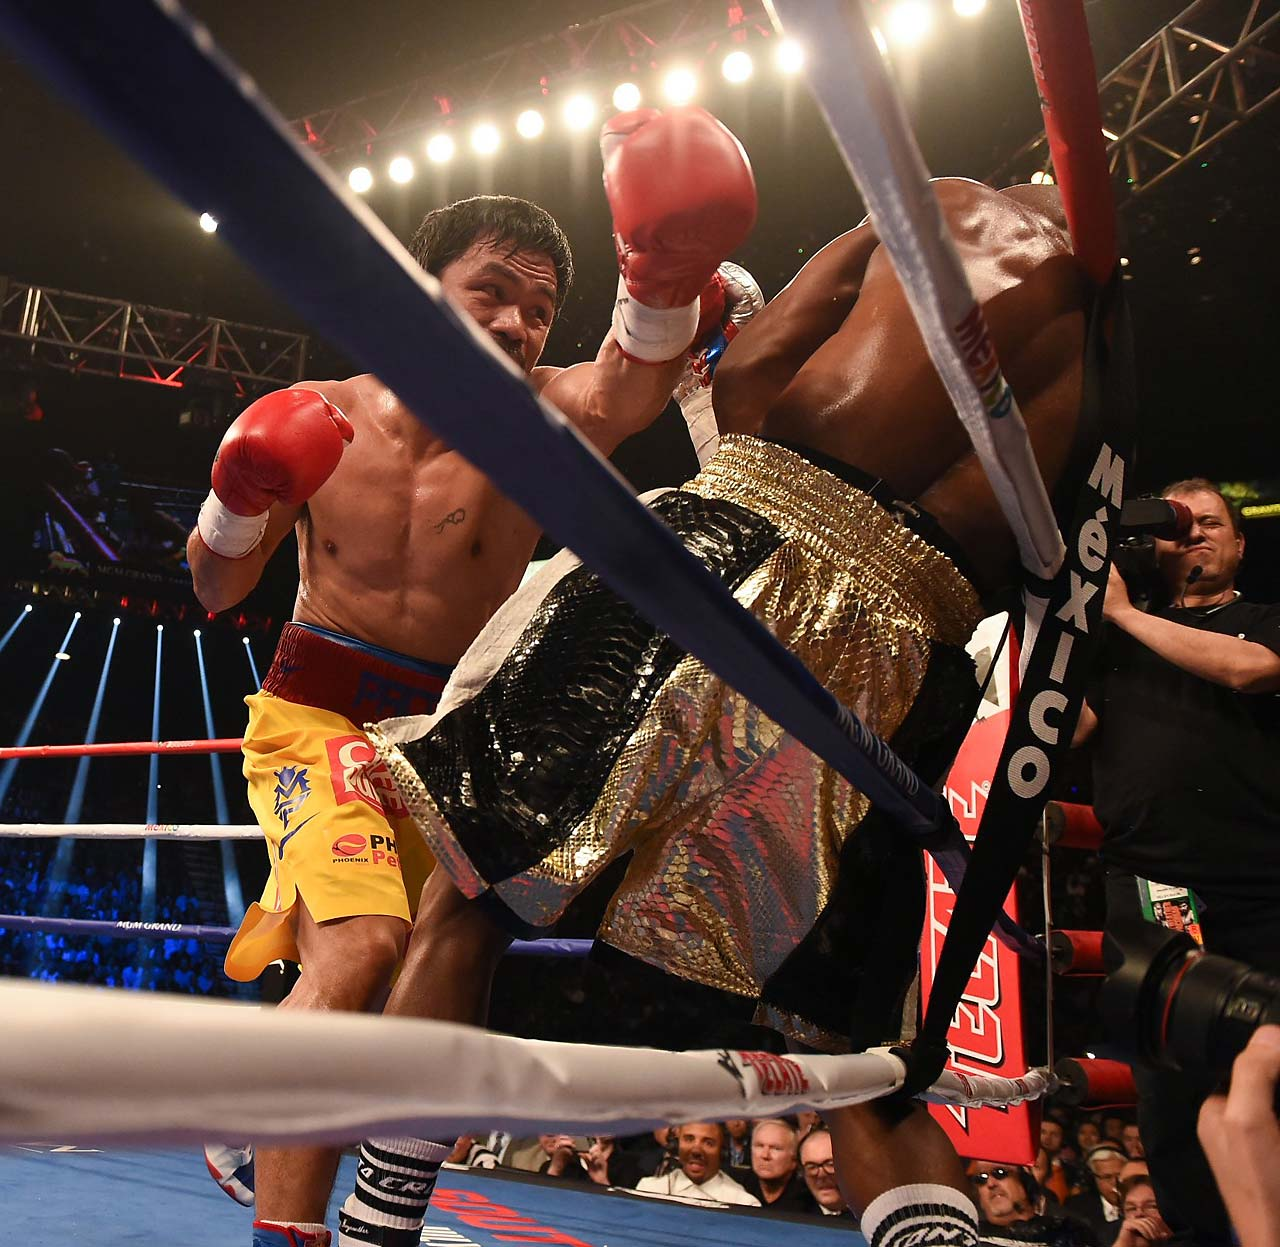 Ringside punch stats showed Mayweather landing 148 punches of 435, while Pacquiao landed 81 of 429. (AP)